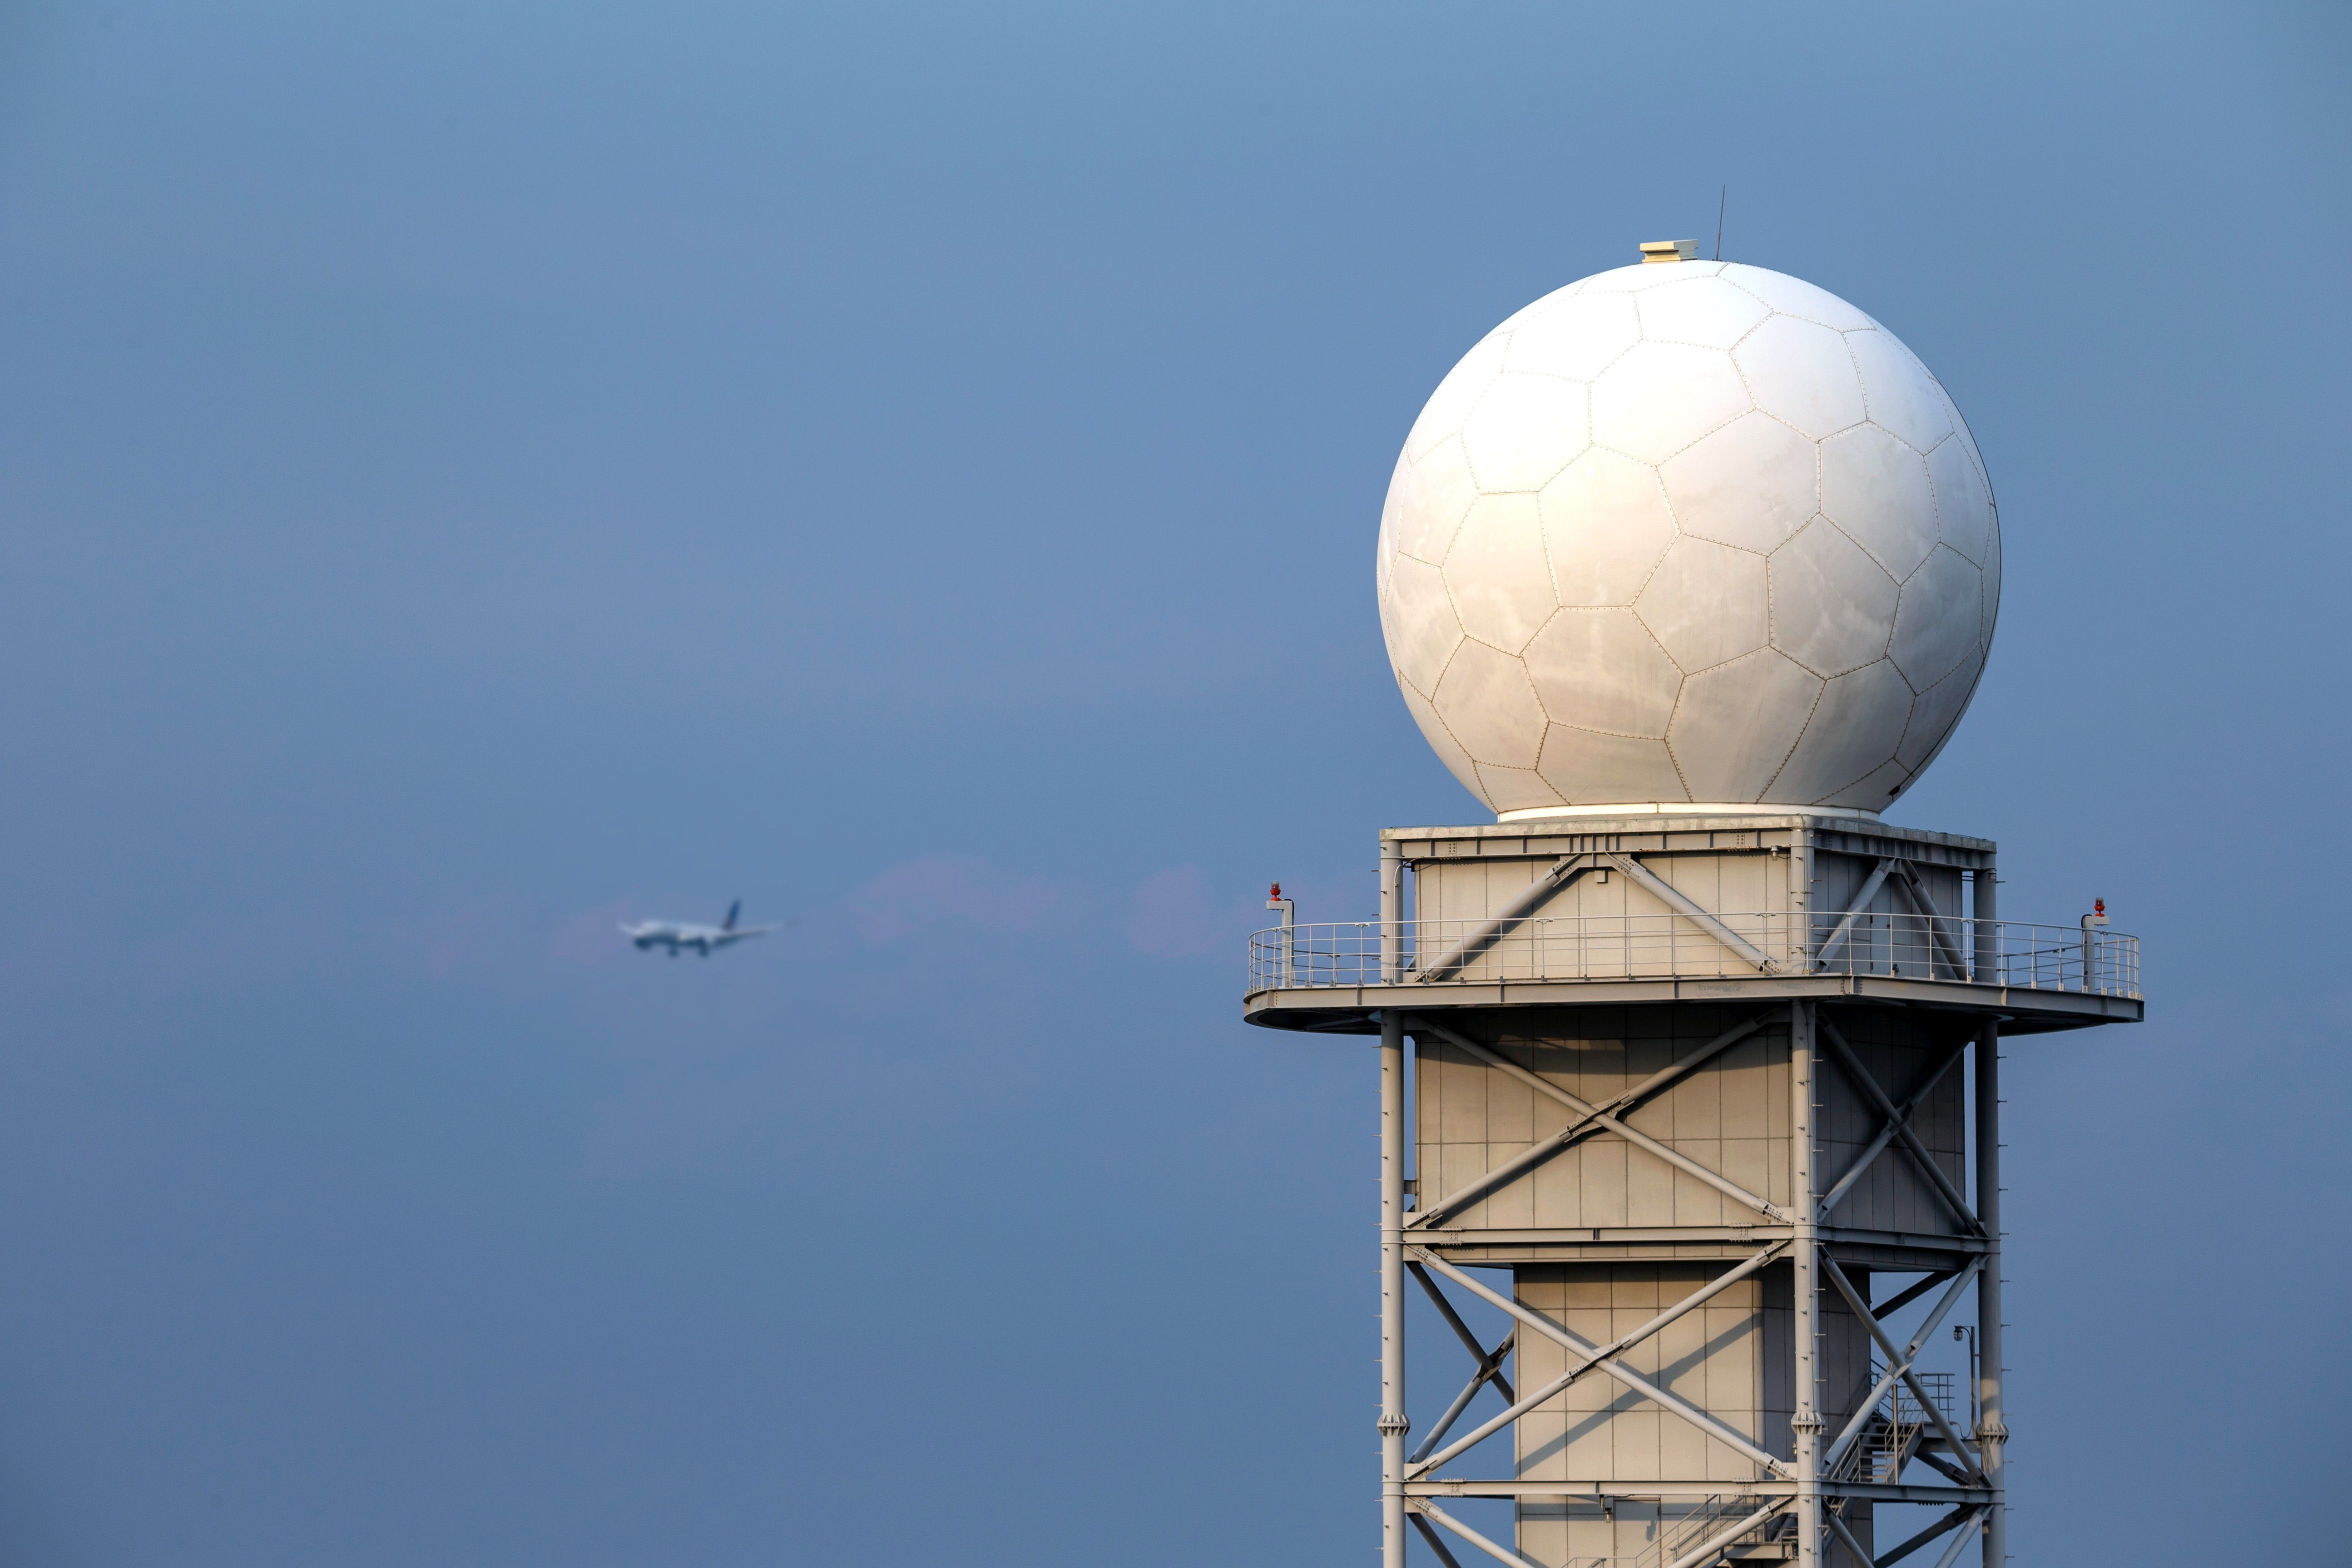 A weather radar with a blue sky and a plane in the background